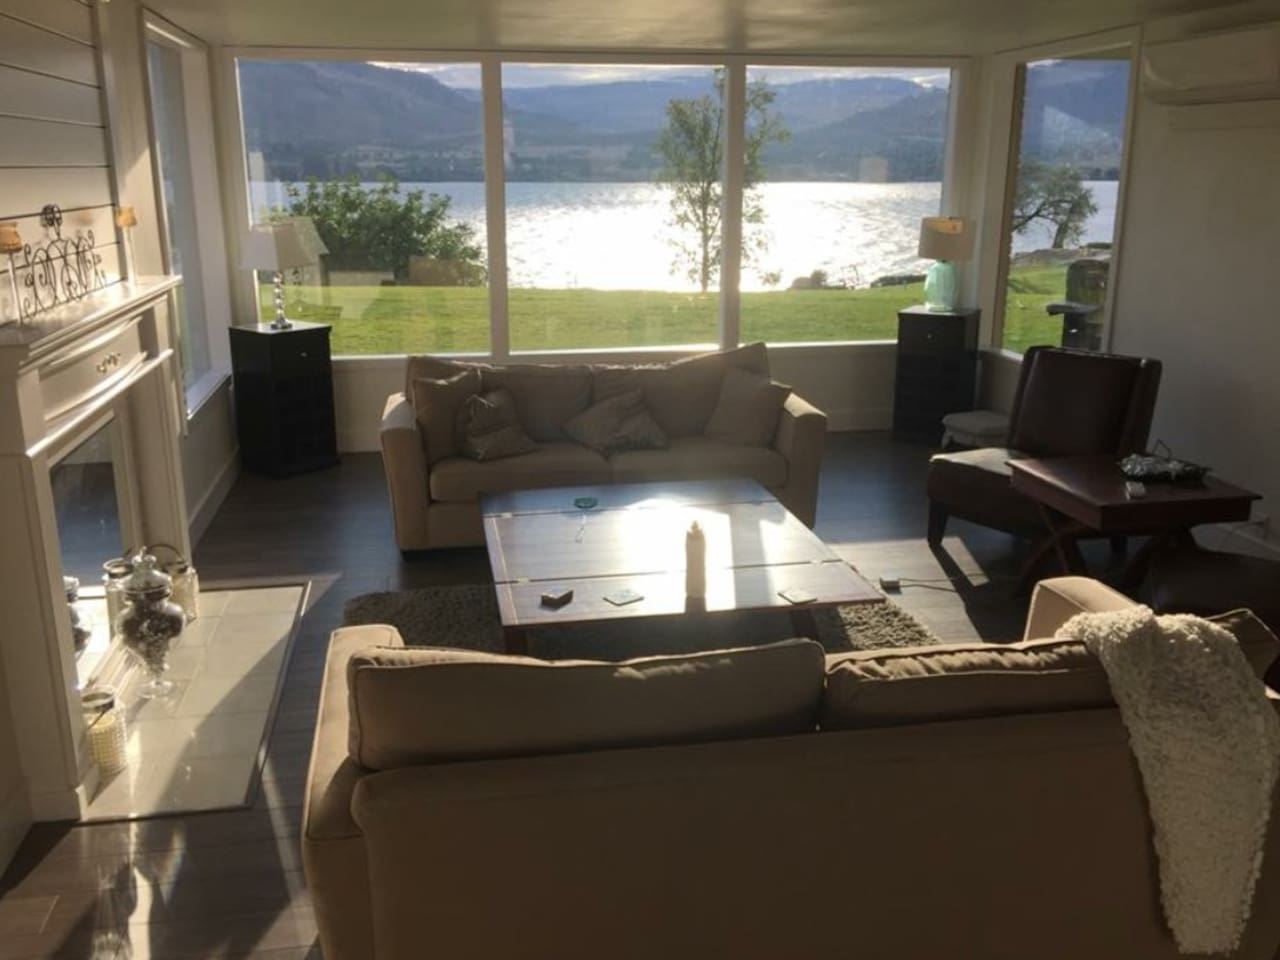 MAIN FORMAL MASSIVE COMFY LIVING ROOM WITH AMAZING AC EVERY WHERE